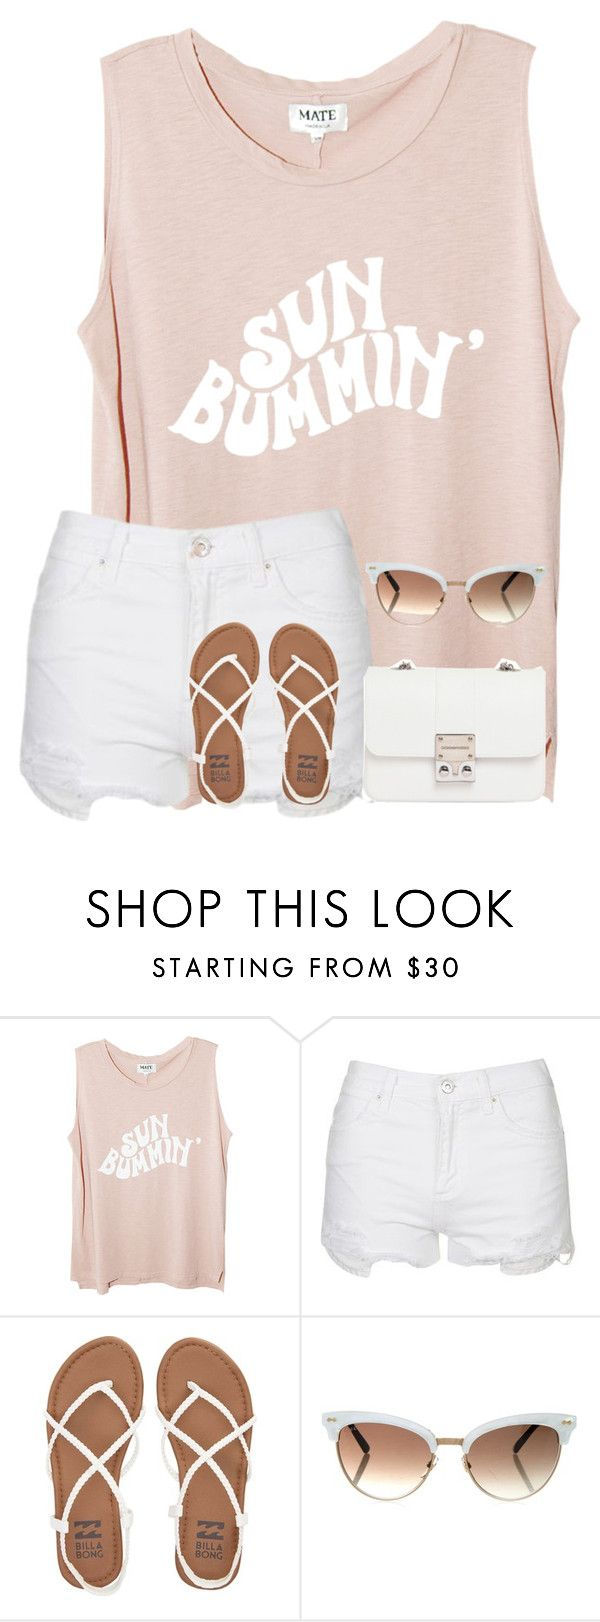 """""""Sans titre #55"""" by josefina-deveci ❤ liked on Polyvore featuring beauty, Topshop, Billabong, Gucci and Design Inverso"""